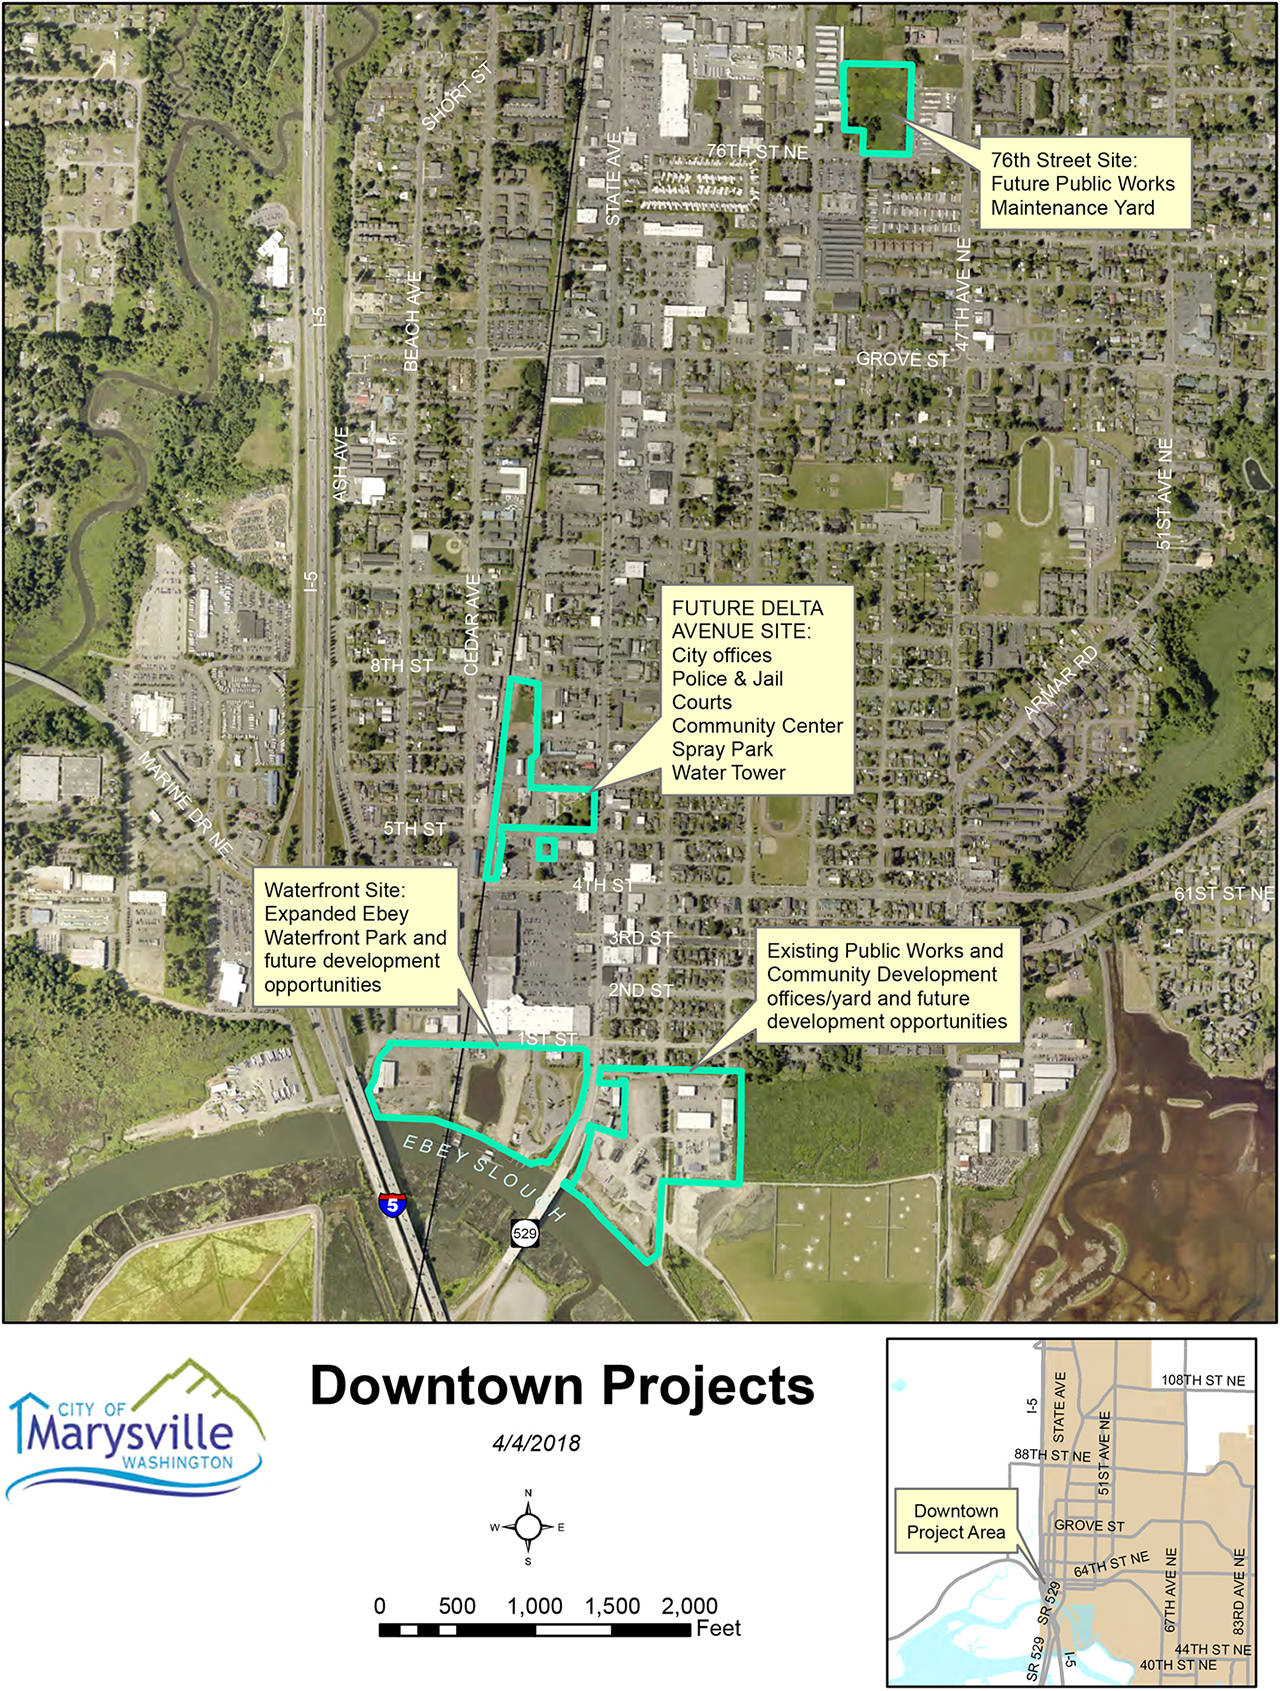 The city of Marysville hopes to build a new police station and jail as part of a civic campus in the next few years. The map shows some of the moving parts that could occur. (City of Marysville)